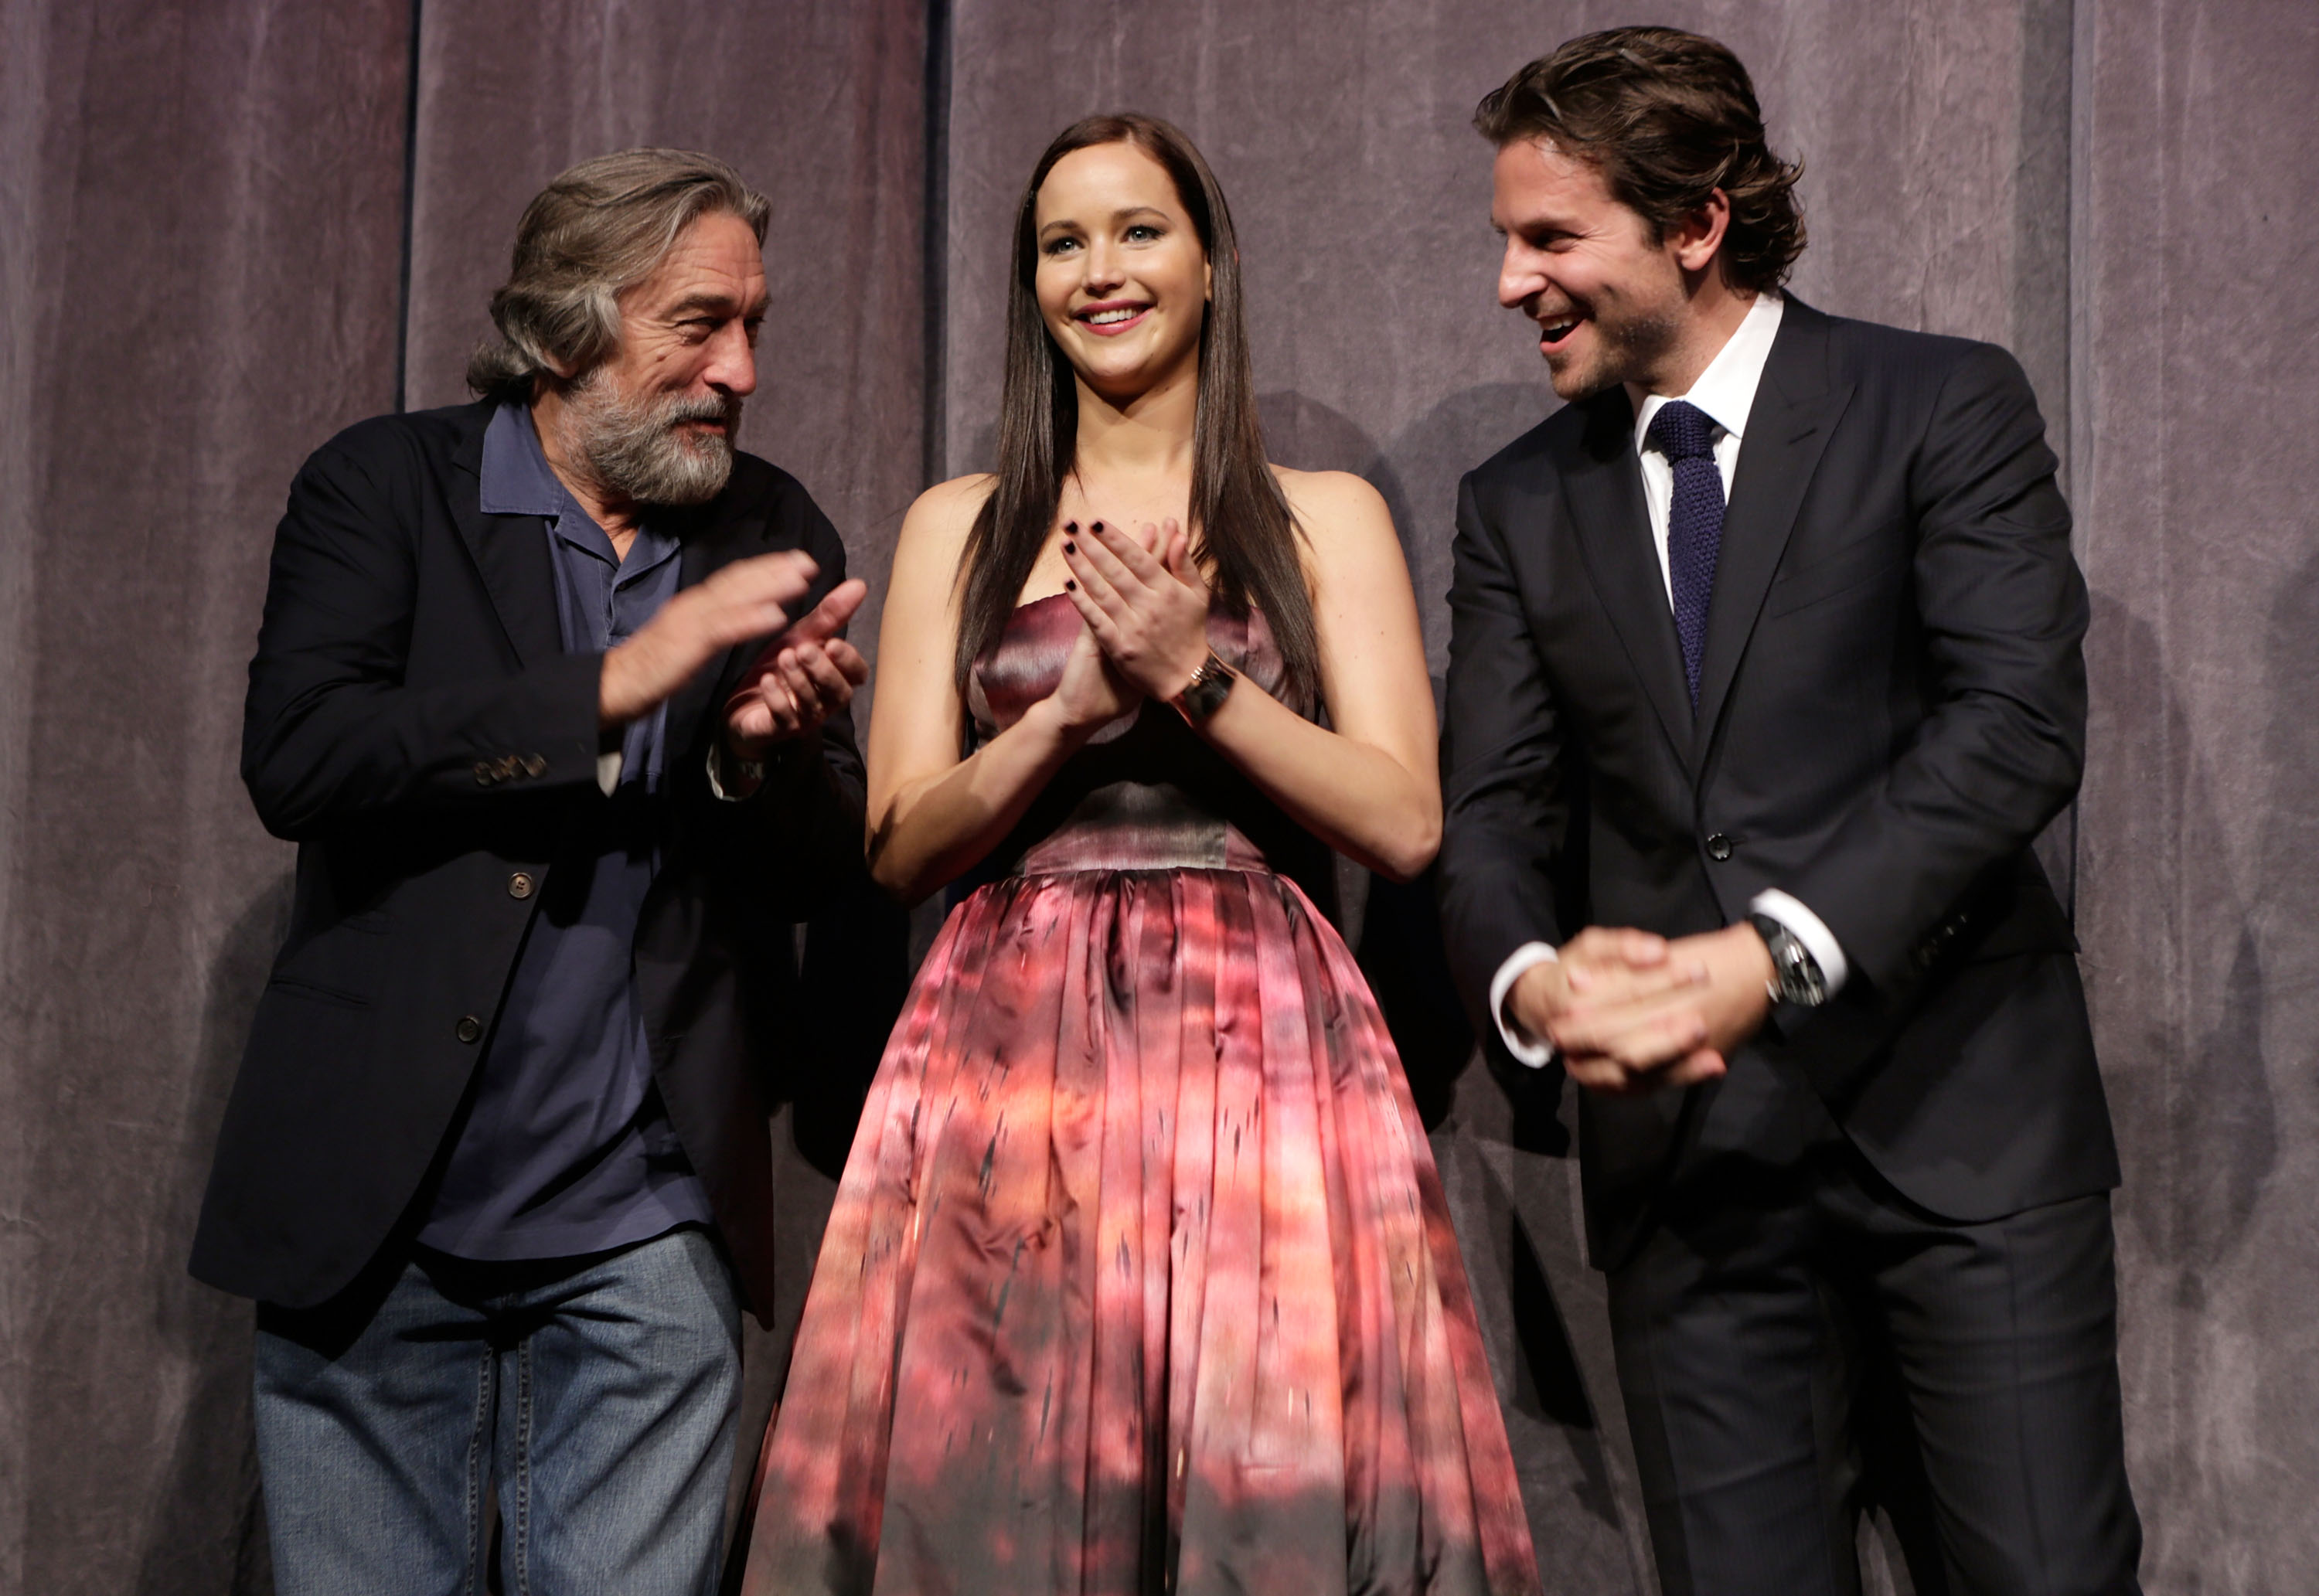 Robert De Niro, Jennifer Lawrence and Bradley Cooper at the <i>Silver Linings Playbook</i> premiere during the 2012 Toronto International Film Festival on Sept. 8, 2012 .